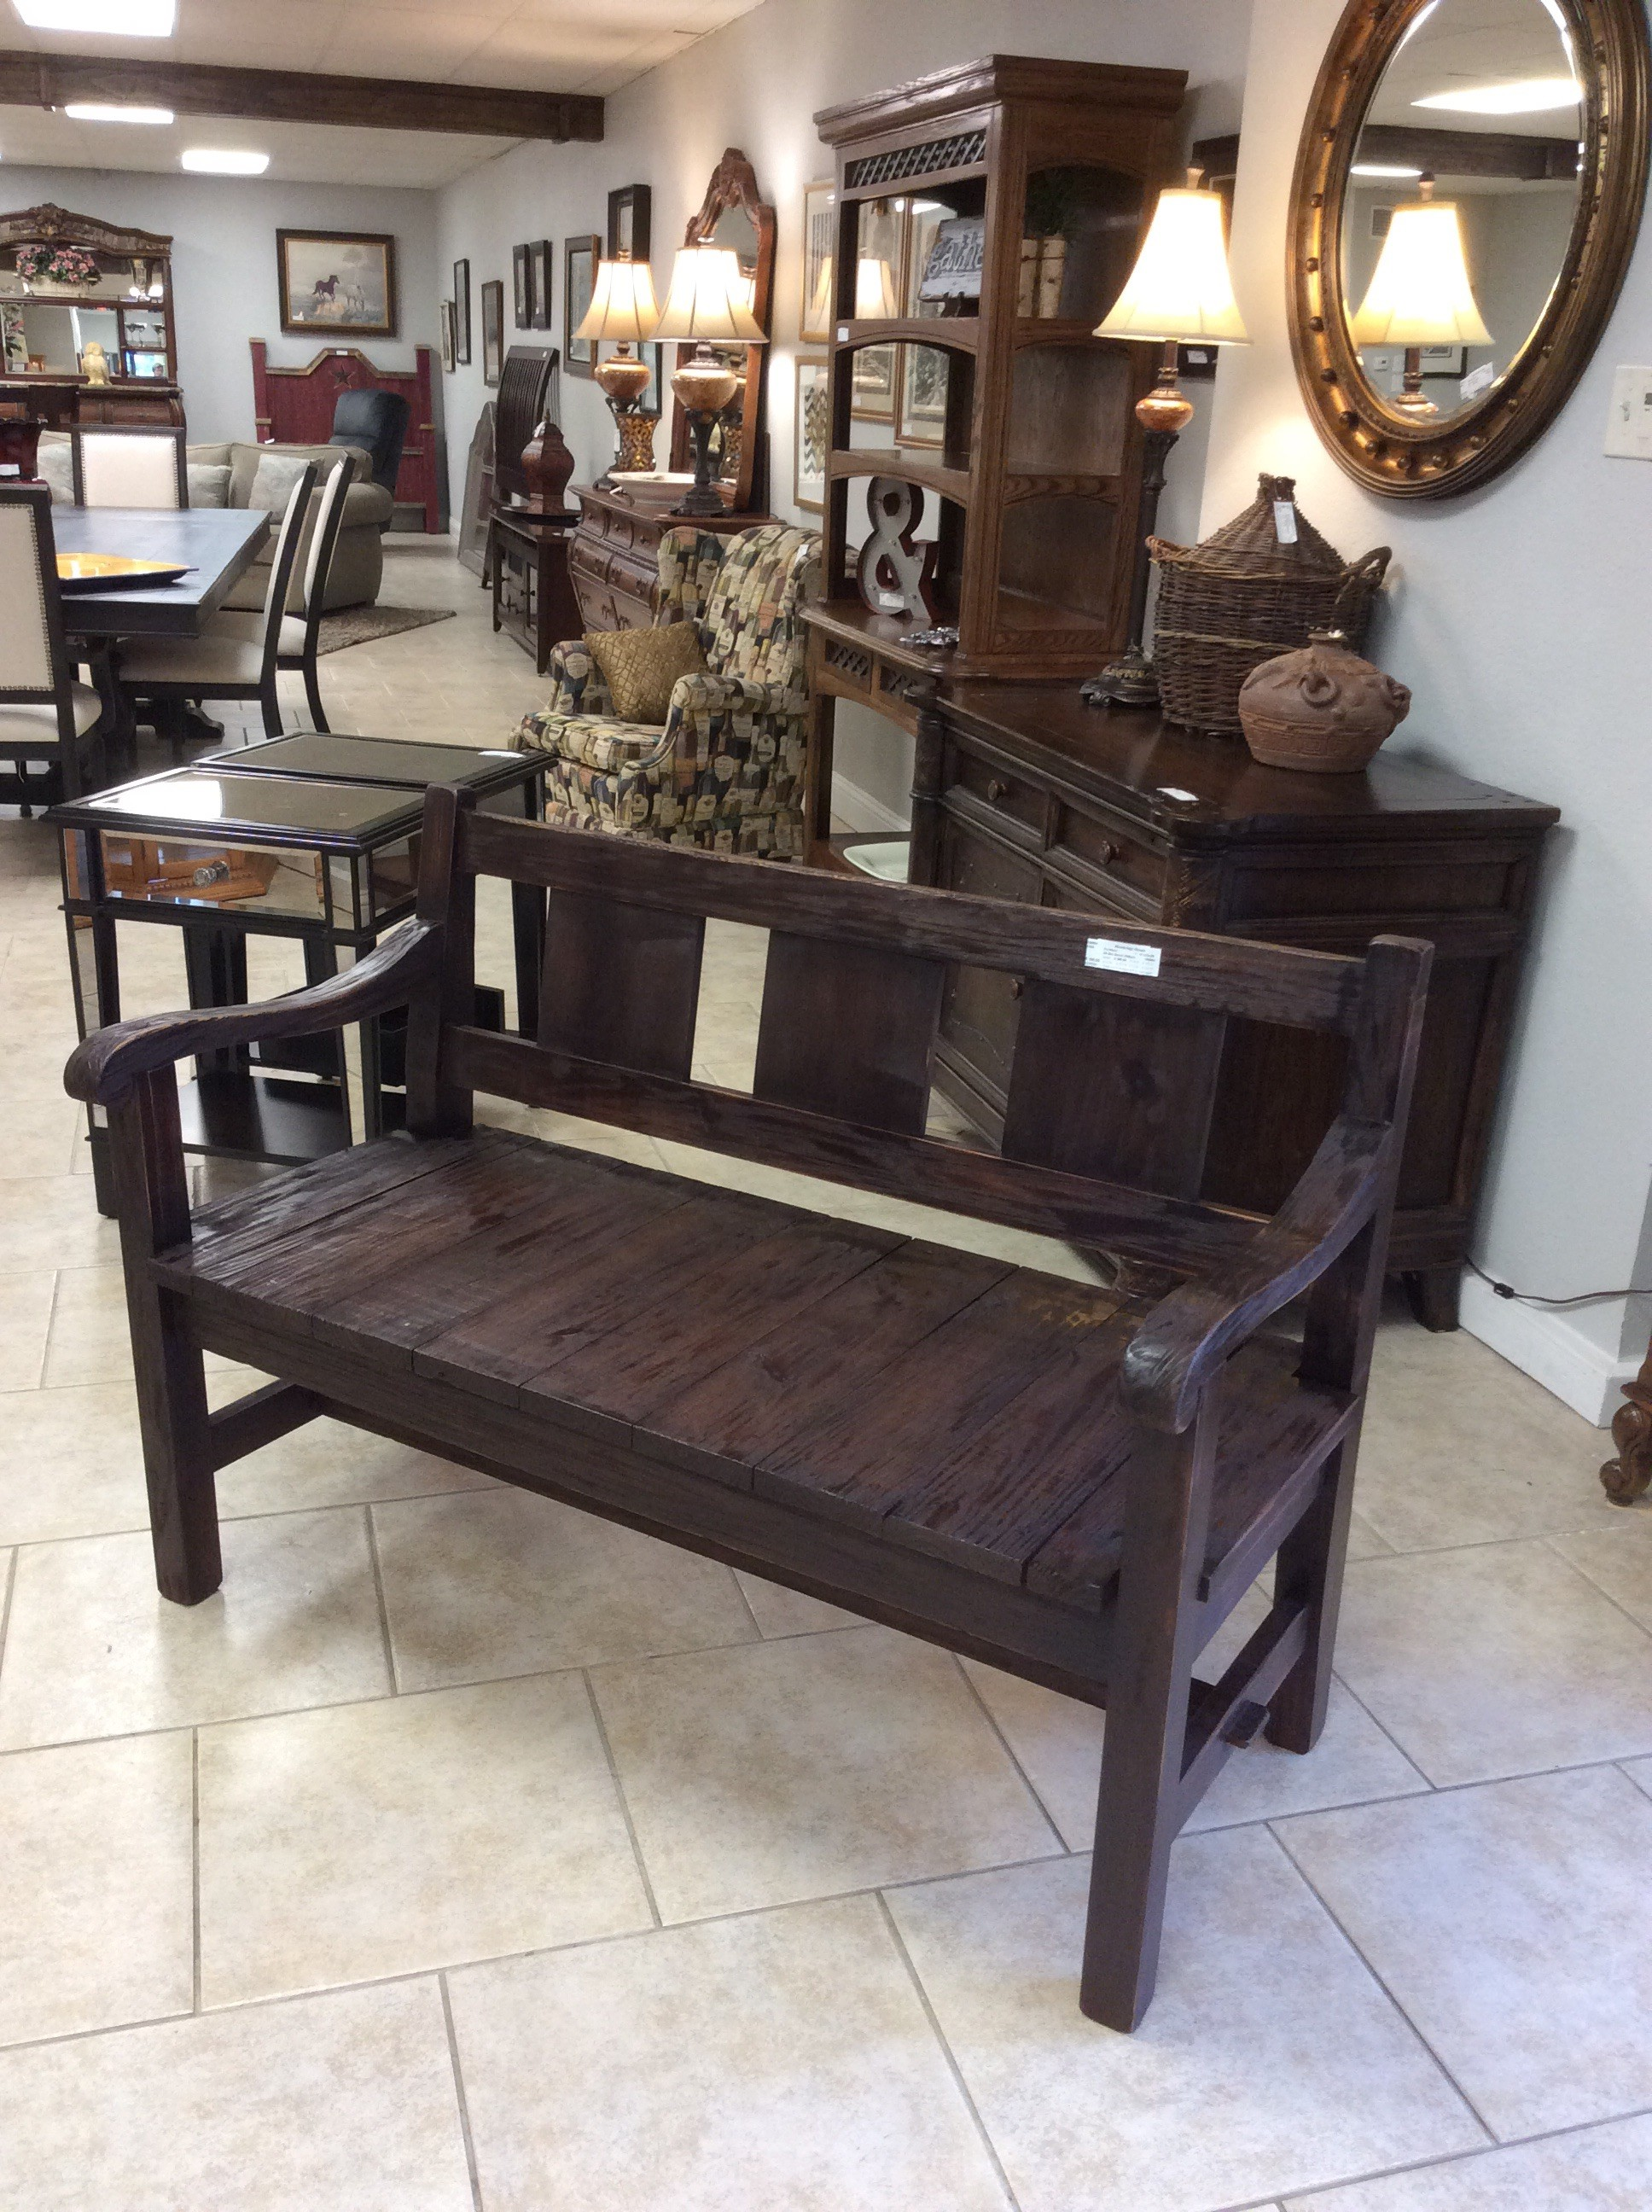 This is another lovely custom-made creation by Greg Watson! This large, roomy plank-style  bench features a dark wood stain which allows the natural wood grain to show through. Lovely enough to be used either outdoors or indoors.